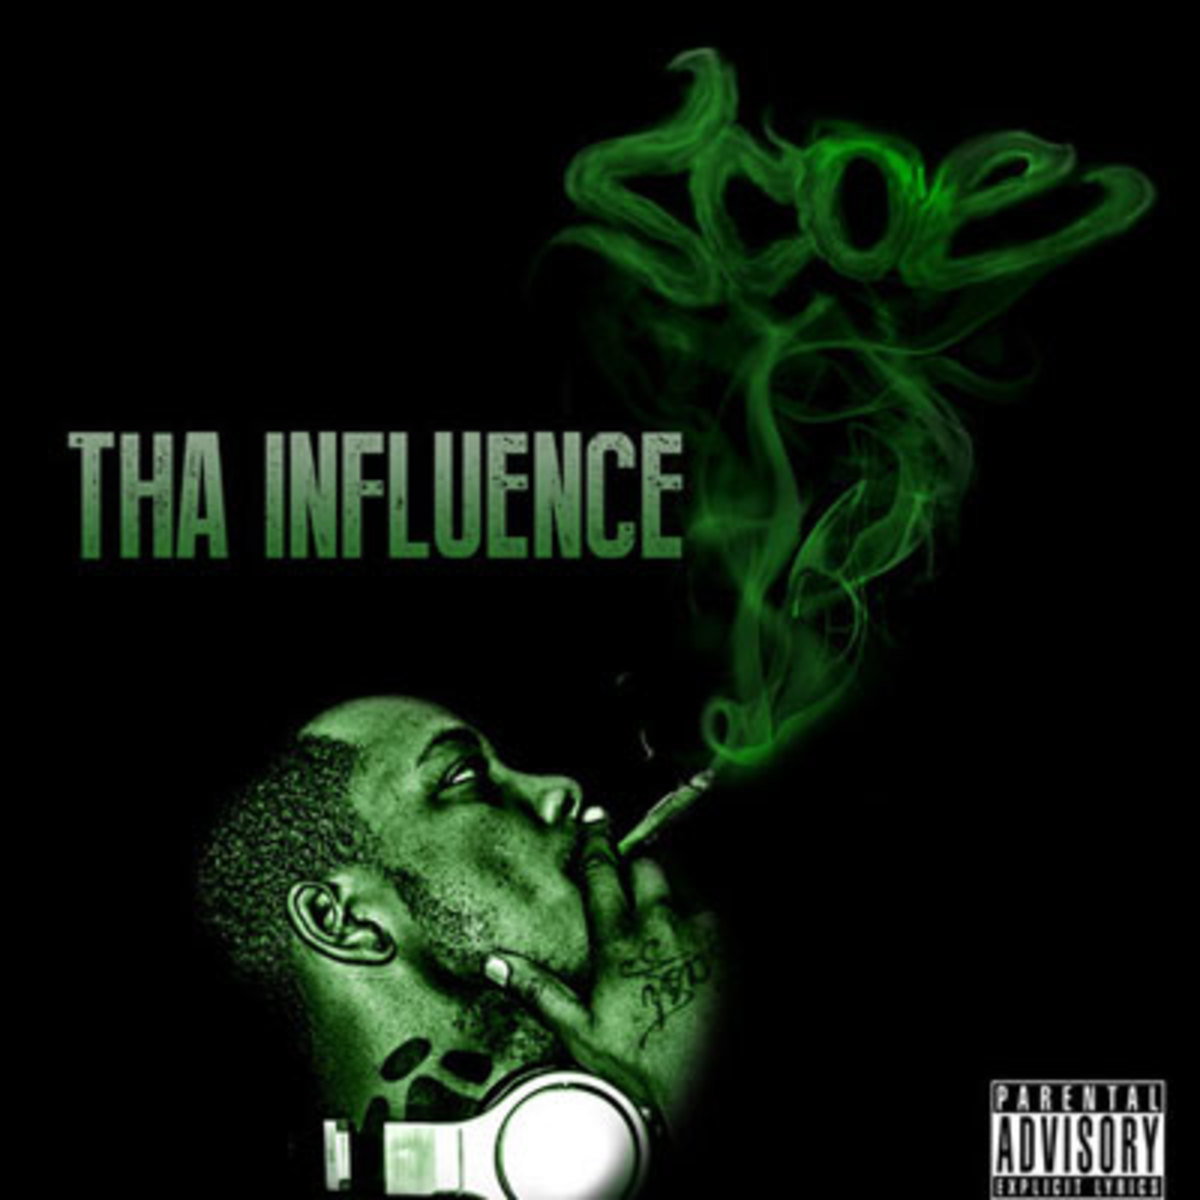 scoe-theinfluence.jpg